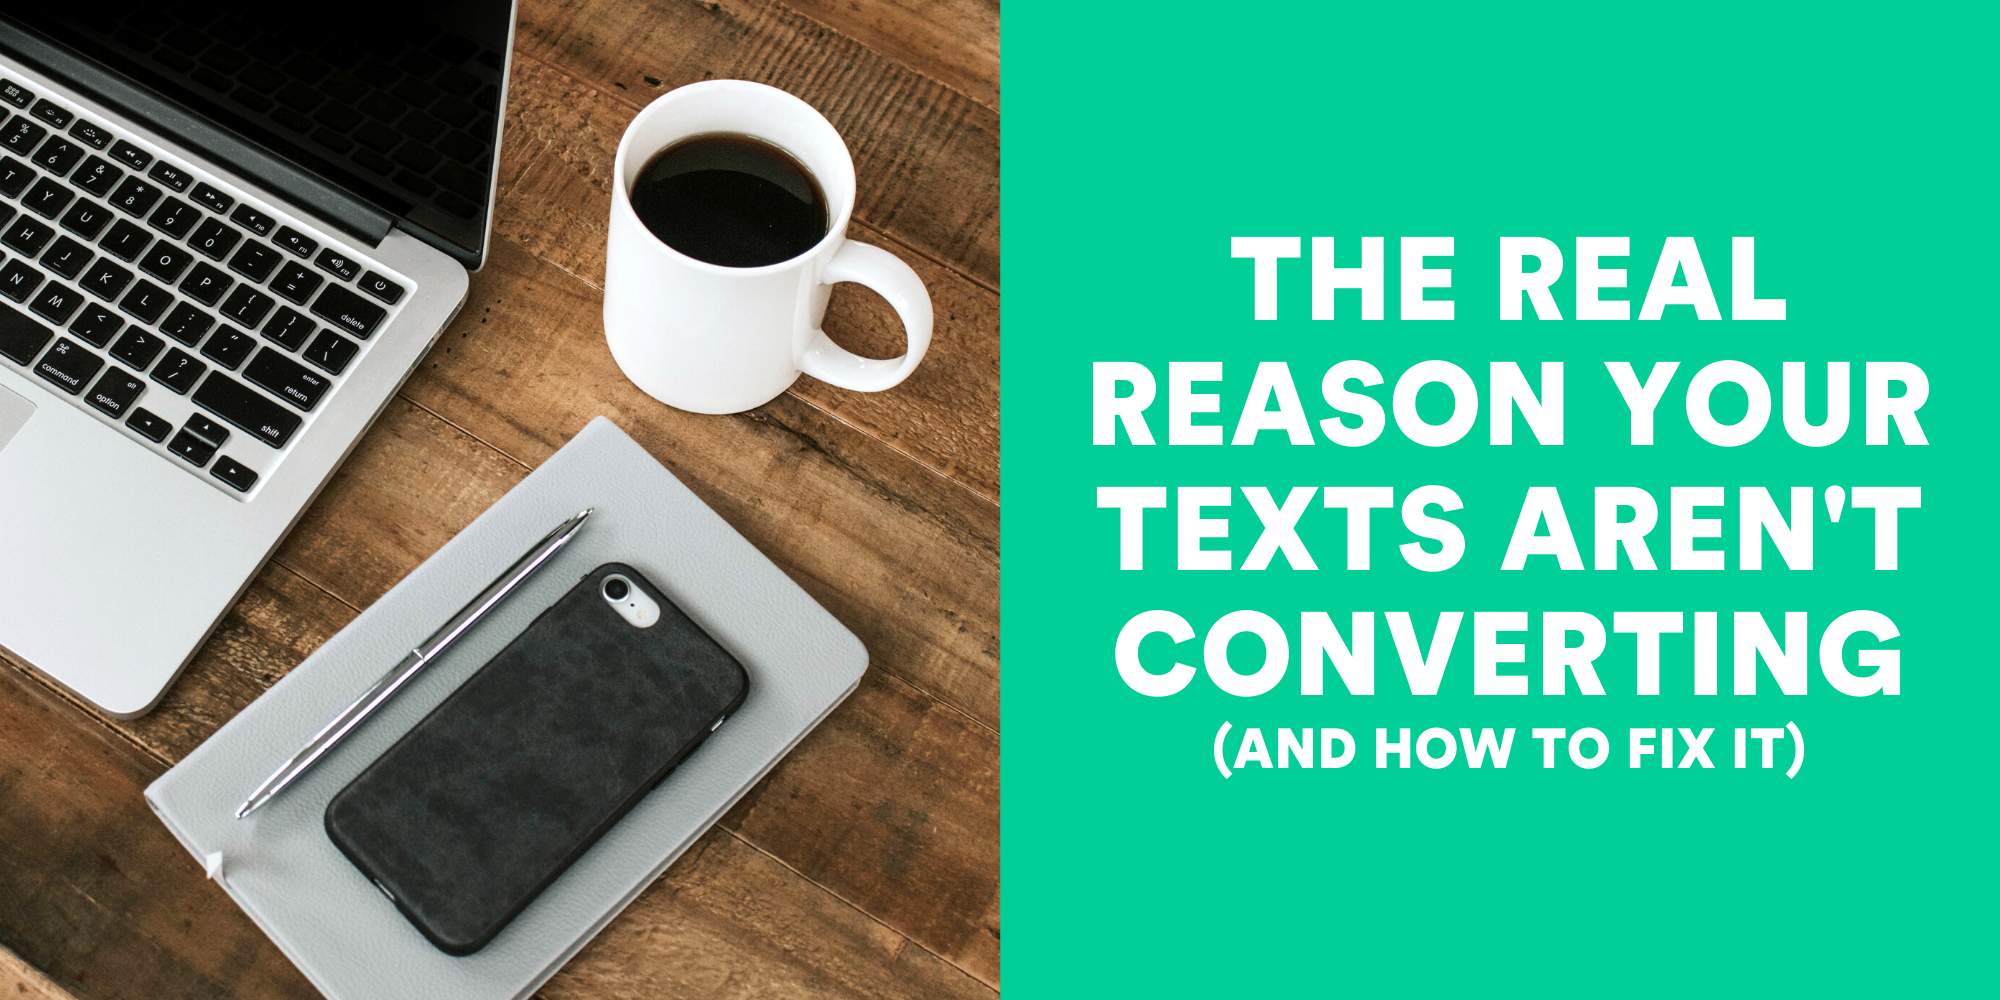 The REAL Reason Your Texts Aren't Converting (and How to Fix It)